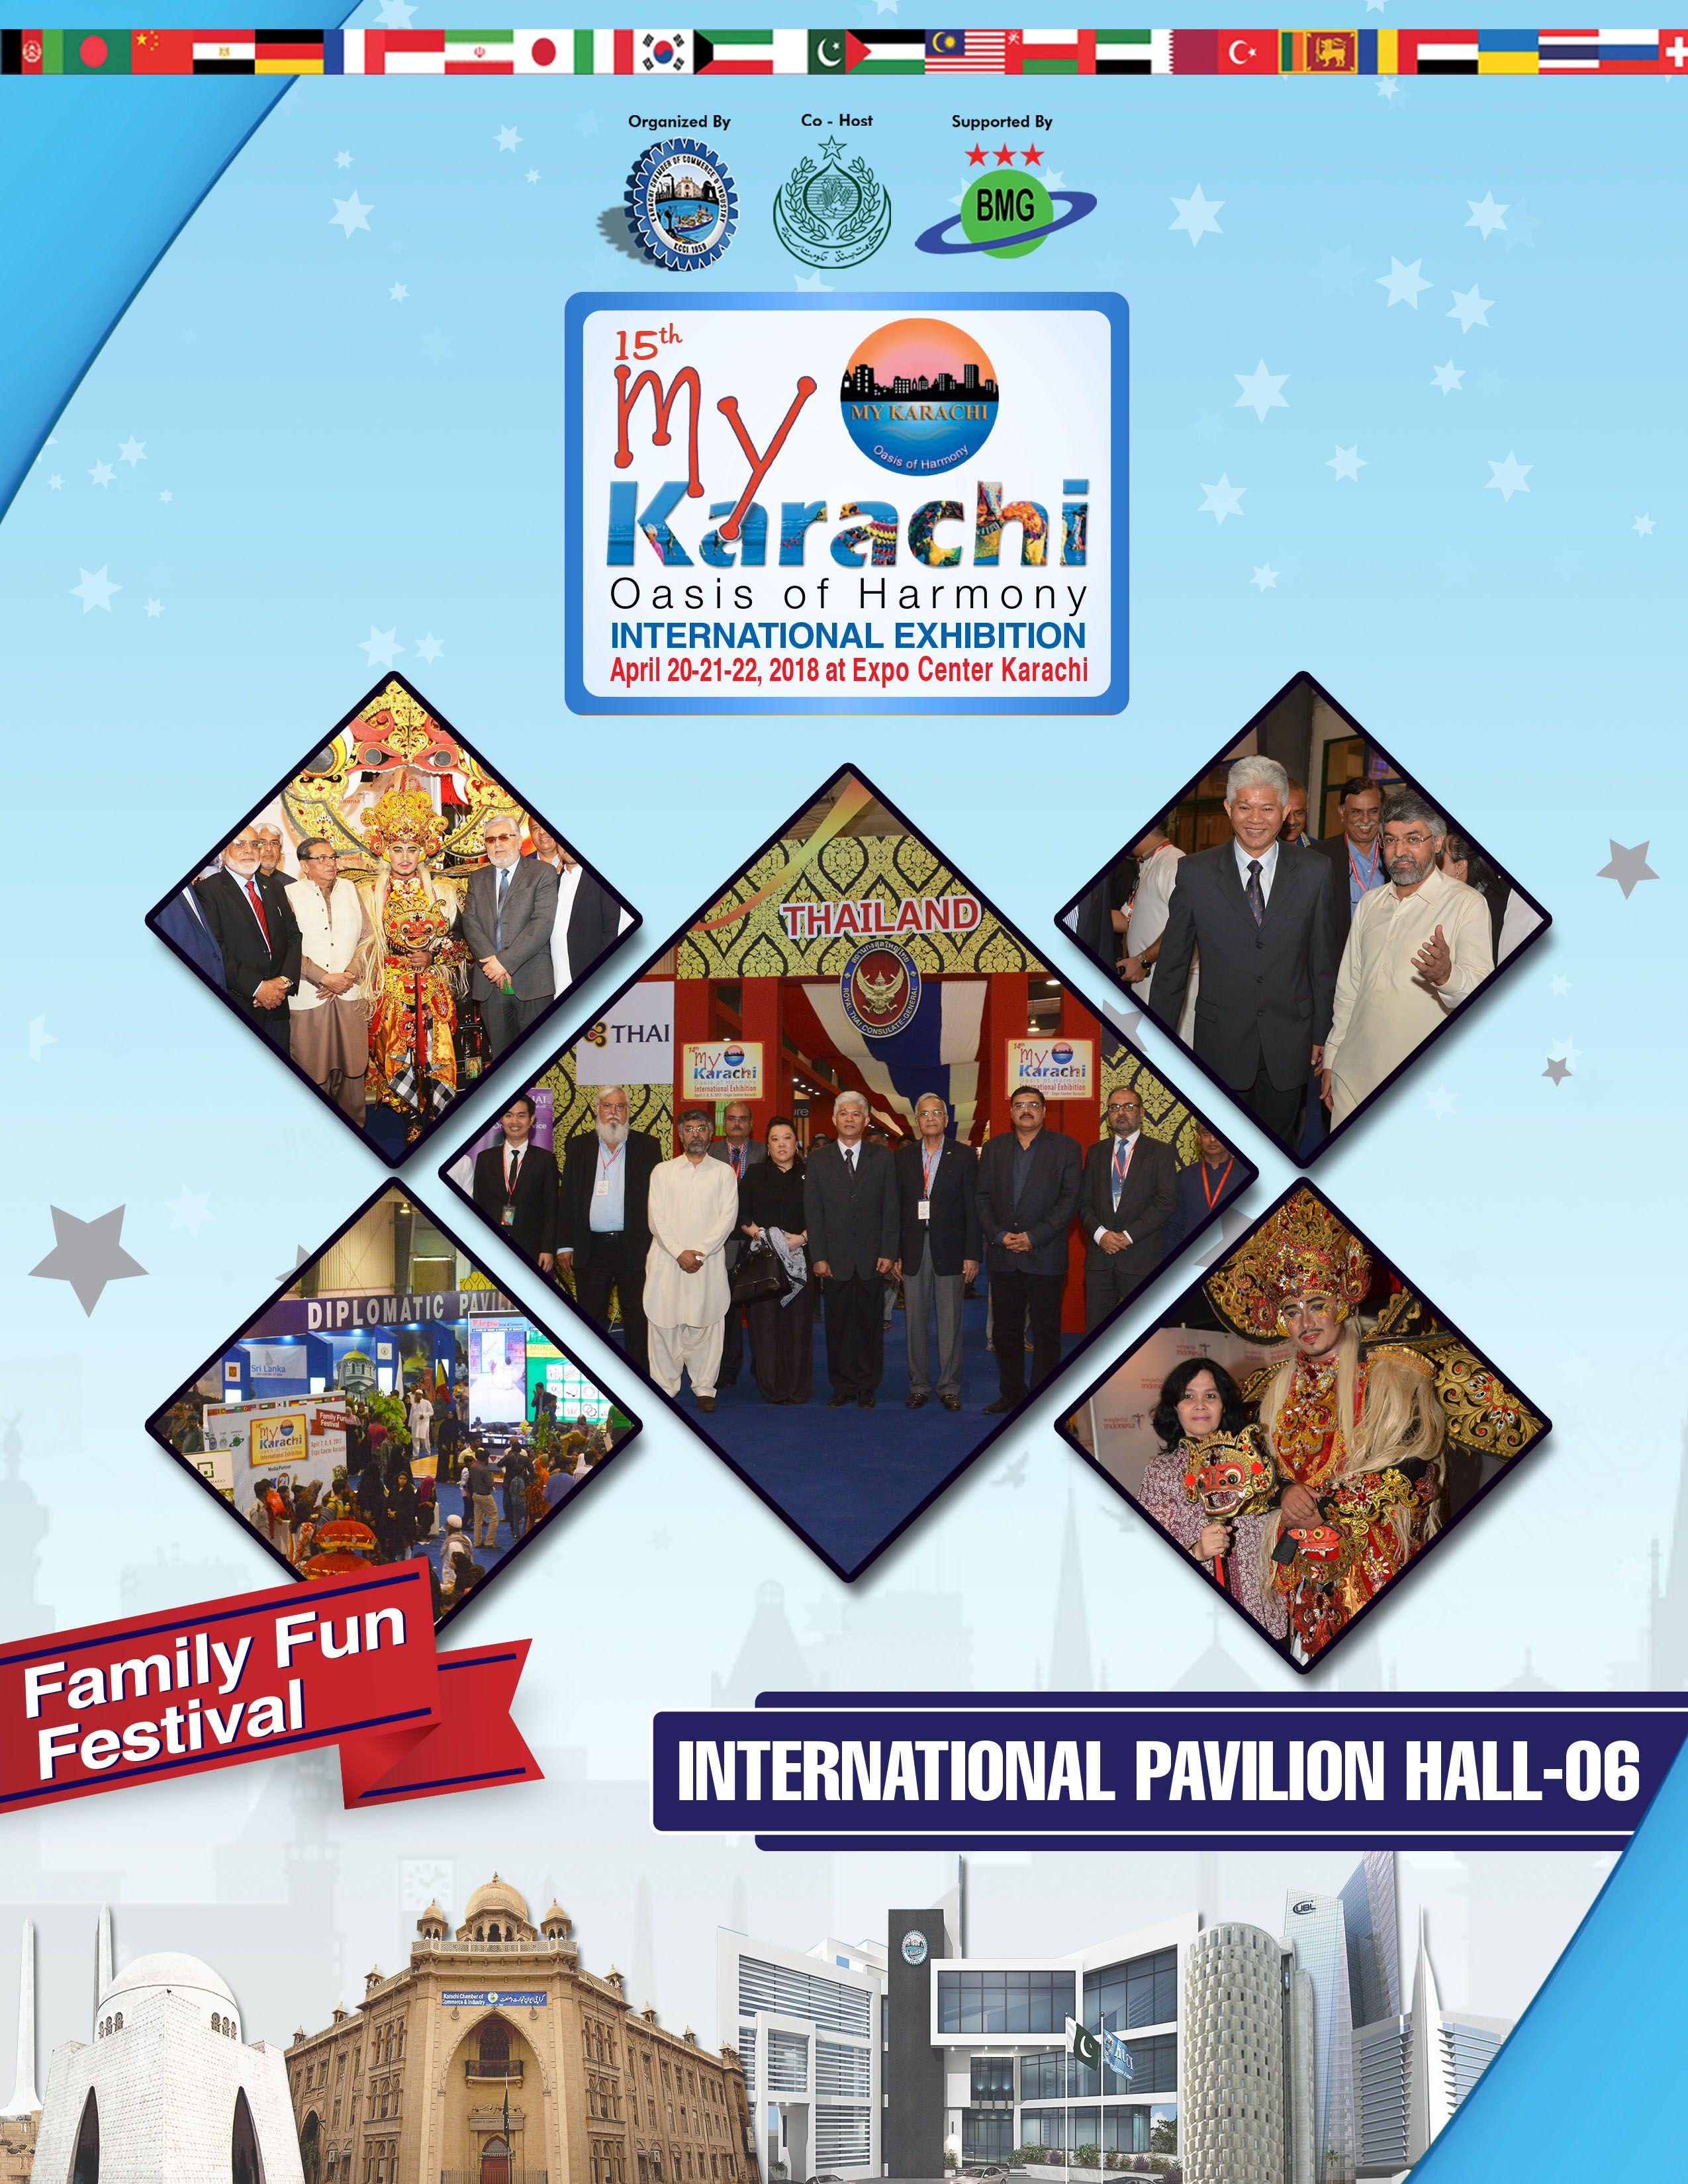 Start the Journey from Karachi to across the sea! Visit us